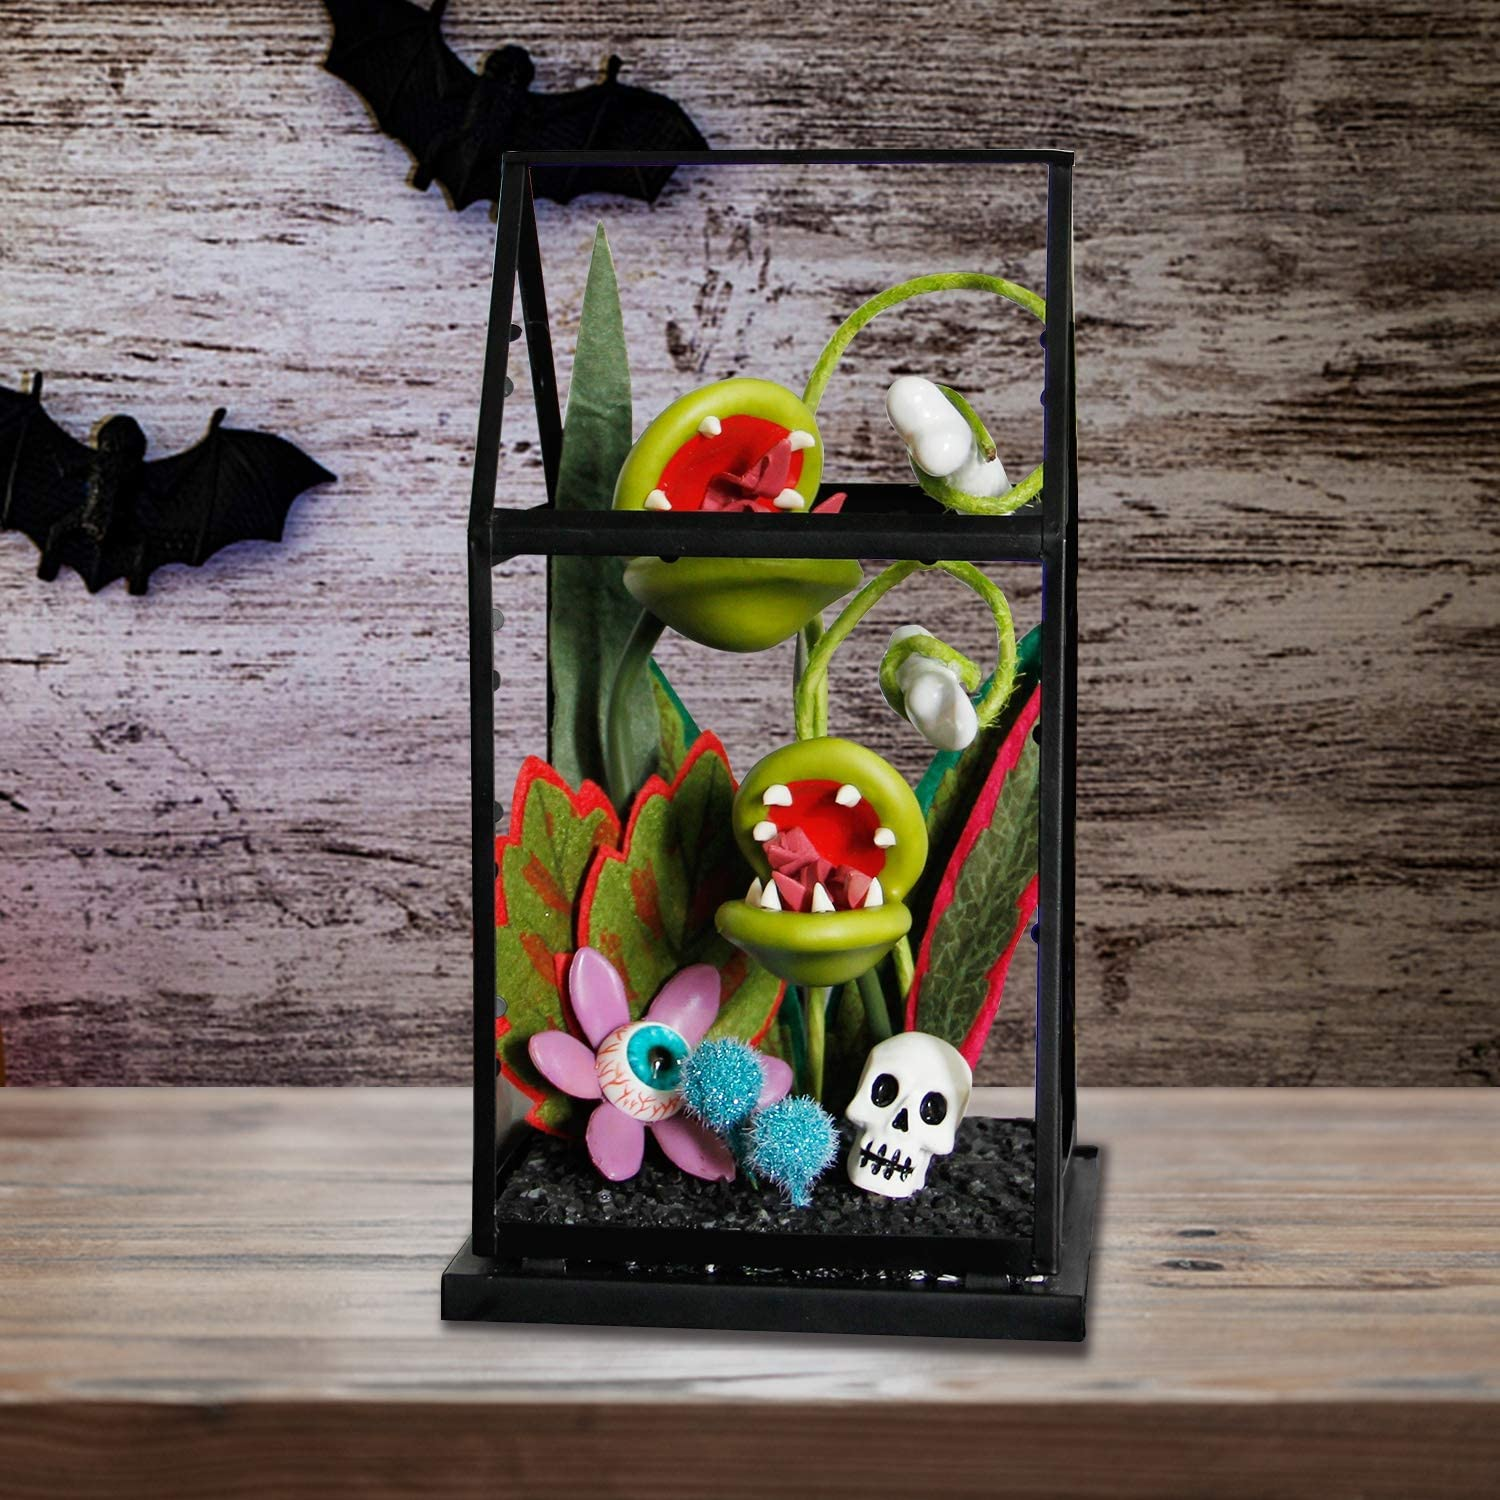 ATDAWN OFFicial mail order Halloween Table Decorations Flower Clearance SALE Limited time Artificial